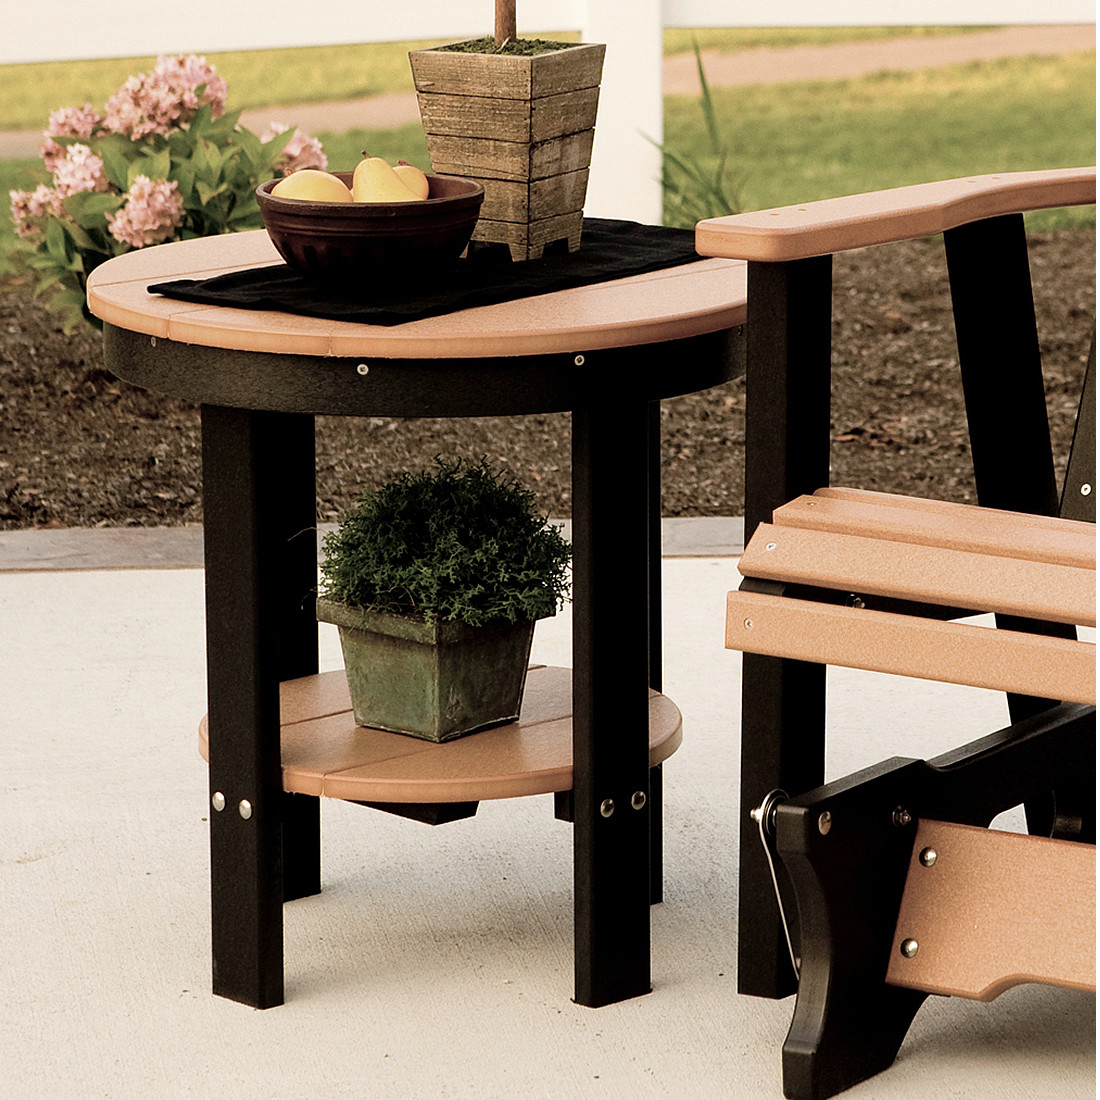 Berlin Gardens Round End Table Berlin Gardens Poly Furniture Collections